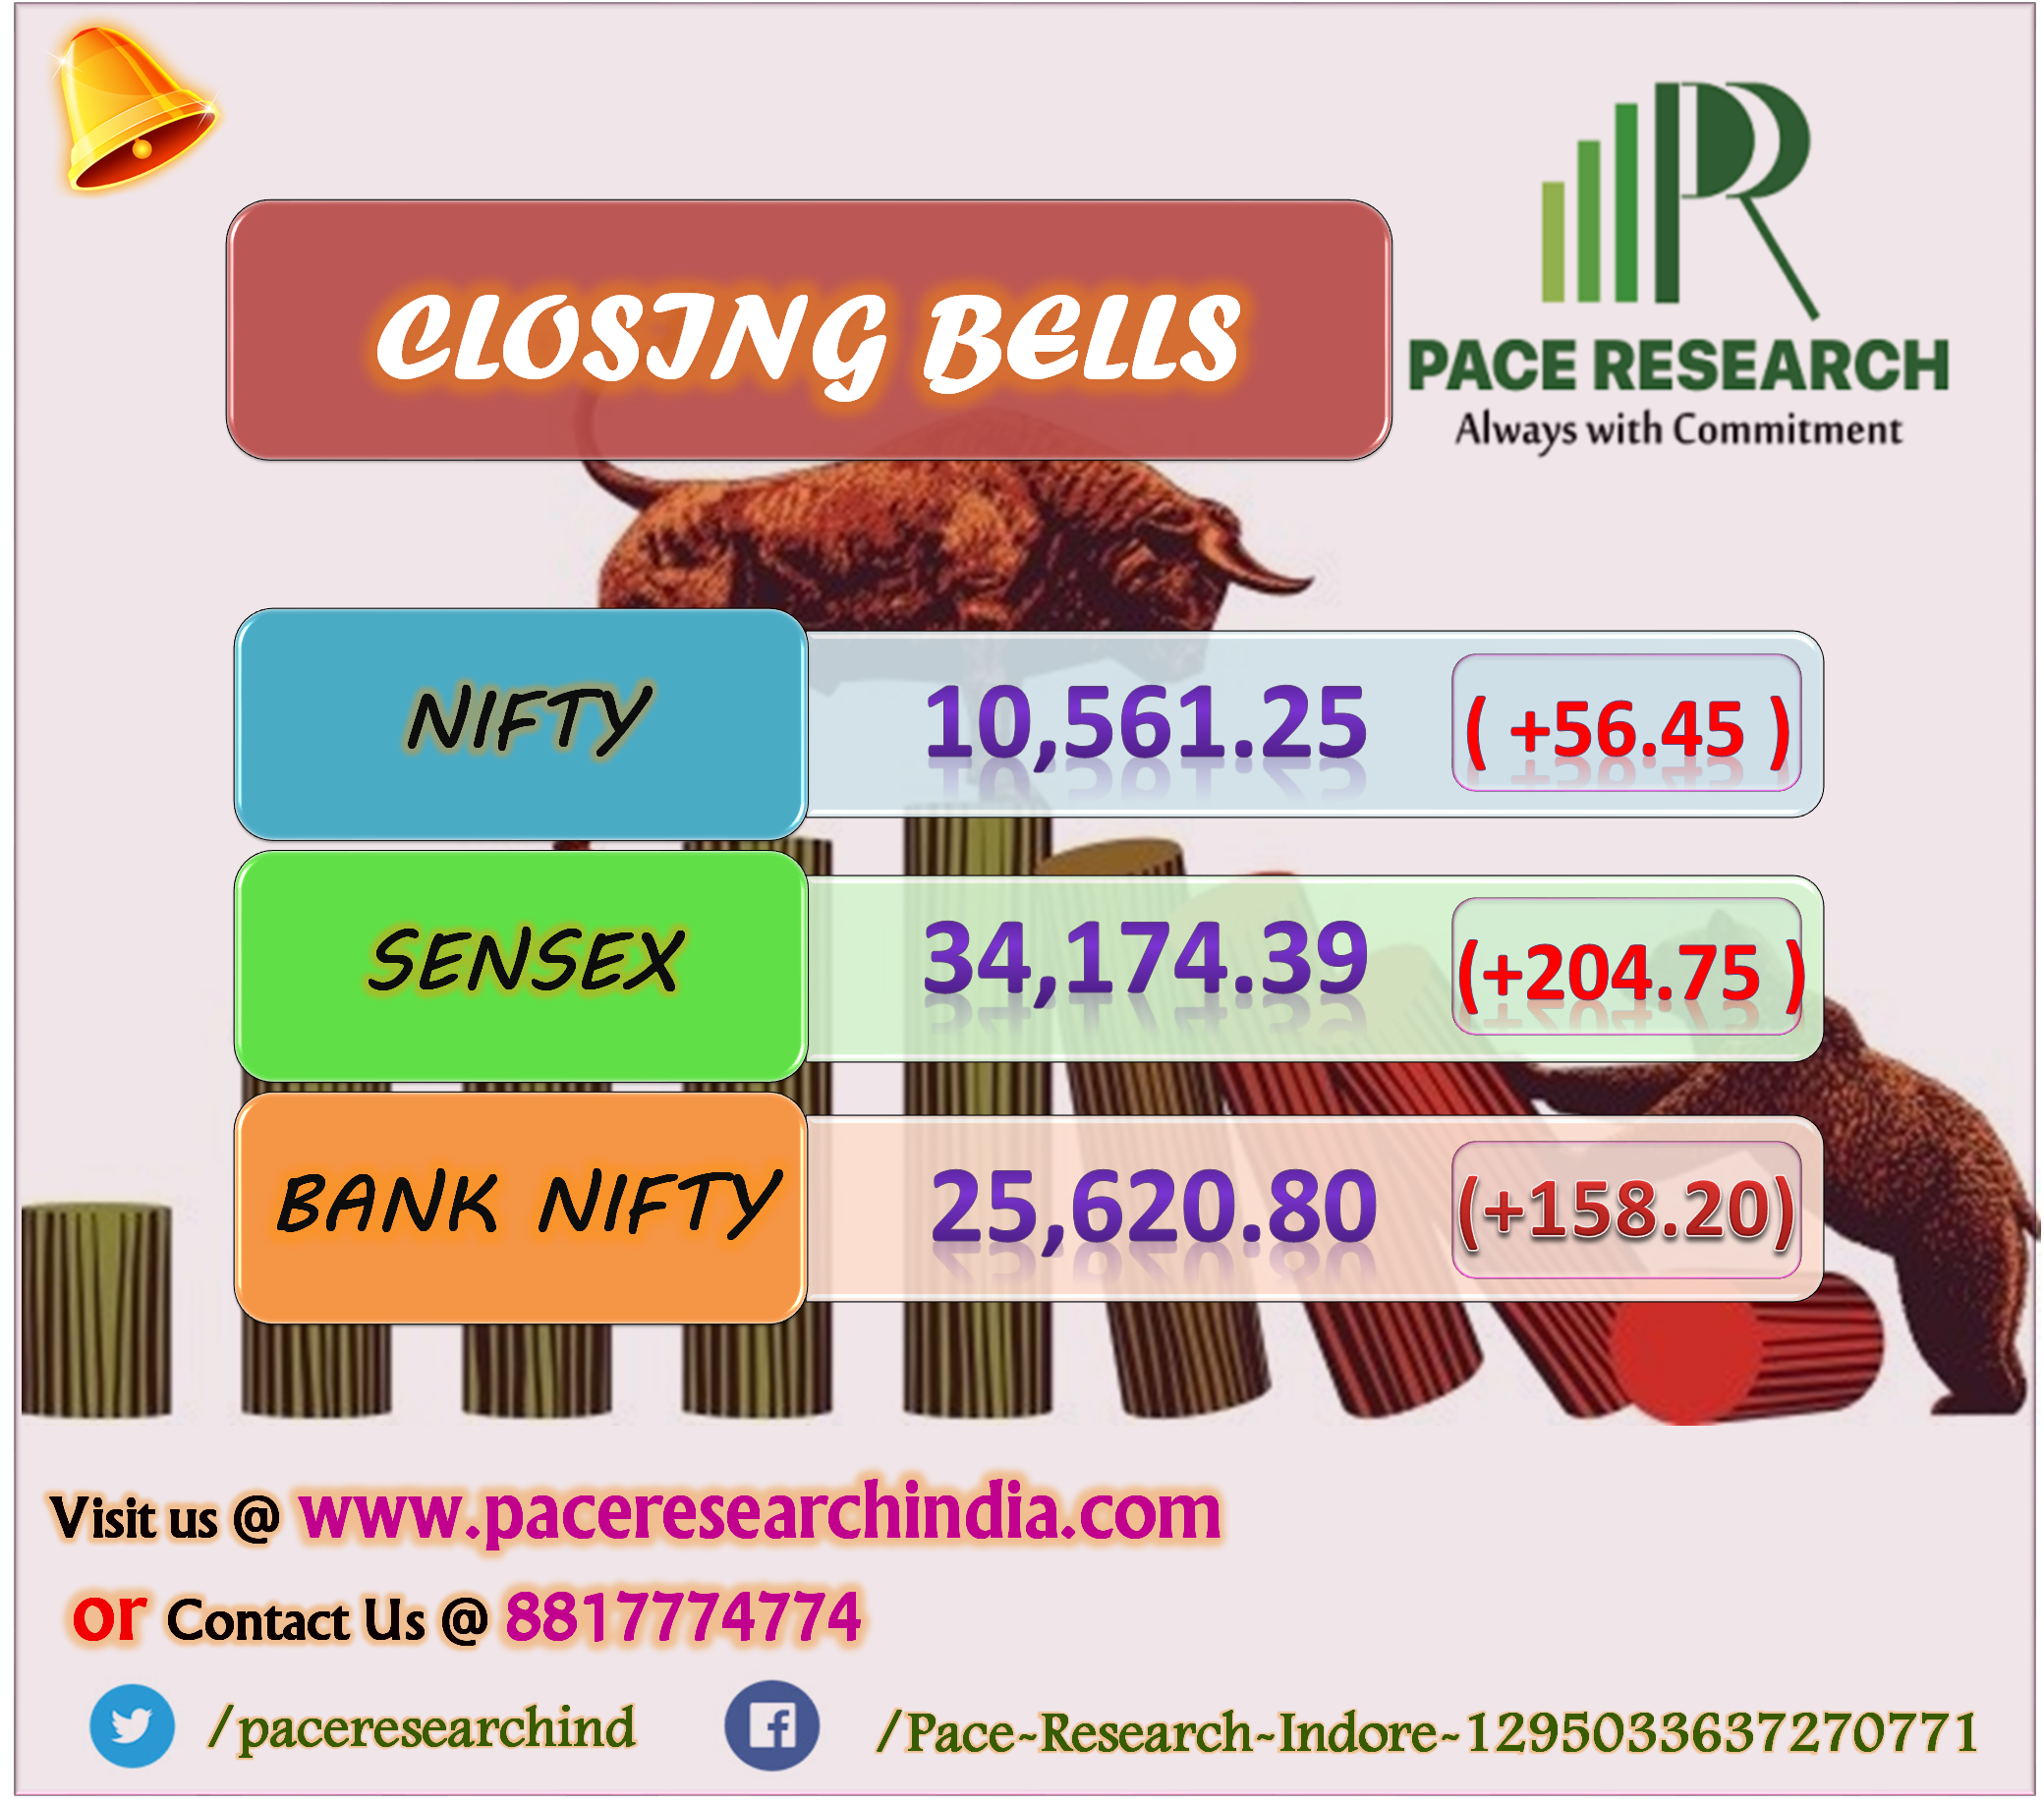 The 30 Share Bse Sensex Rose 184 21 Points To 34 153 85 And The 50 Share Nse Nifty Gained 54 10 Points At 10 558 90 About 1 71 Nifty Positive Notes Bse Sensex